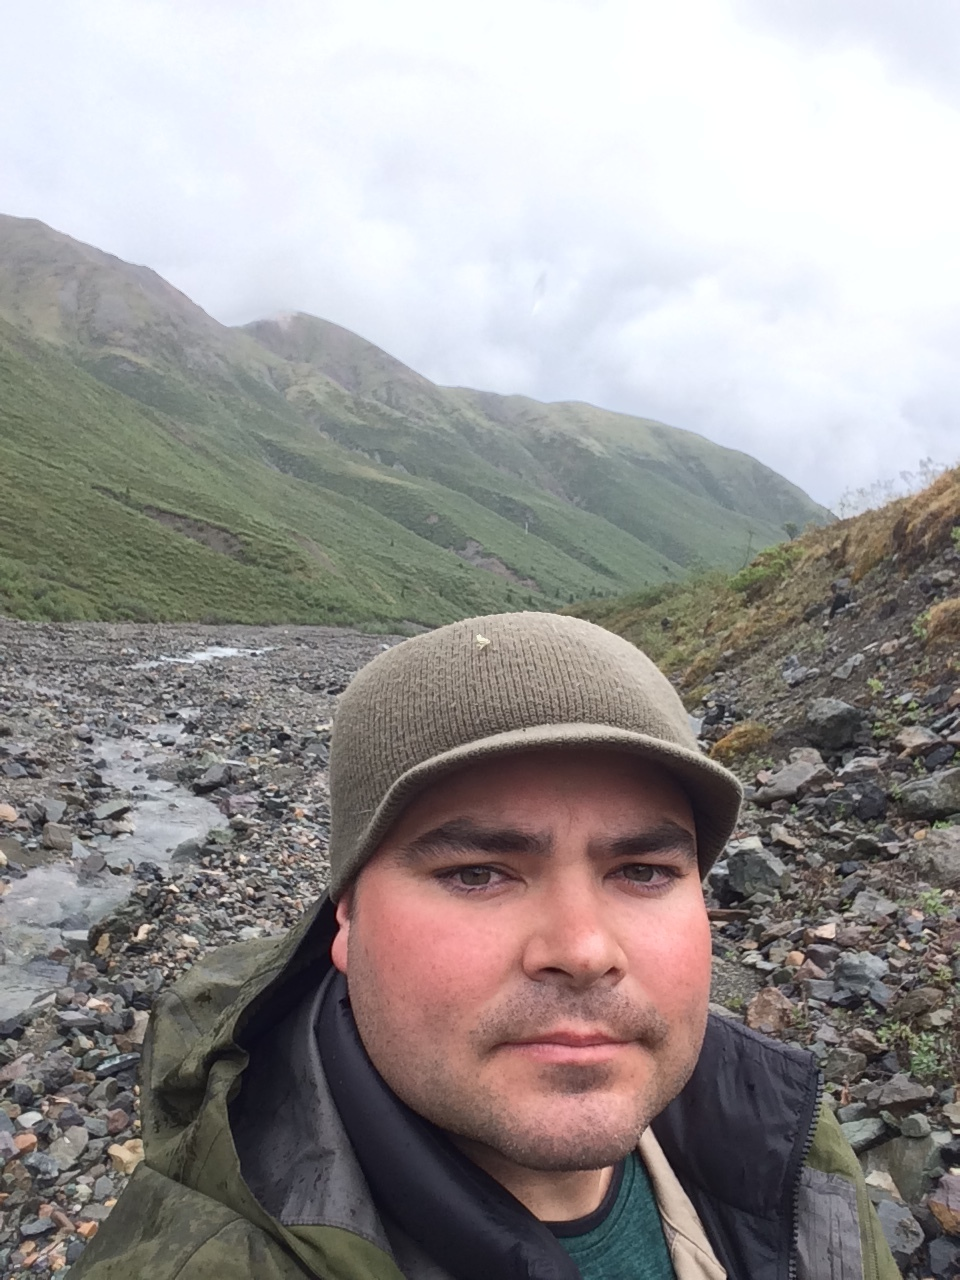 The only pic taken from my 1st backpacking trip in the Yukon. Bock's Creek behind me. Didn't plan on posting it which is why I'm not smiling. Taken after a tough hike climbing over 900m in elevation with a backpack that was way too heavy. My legs were taxed after this.  What I learned: mountains here are big, I need to hit the gym.